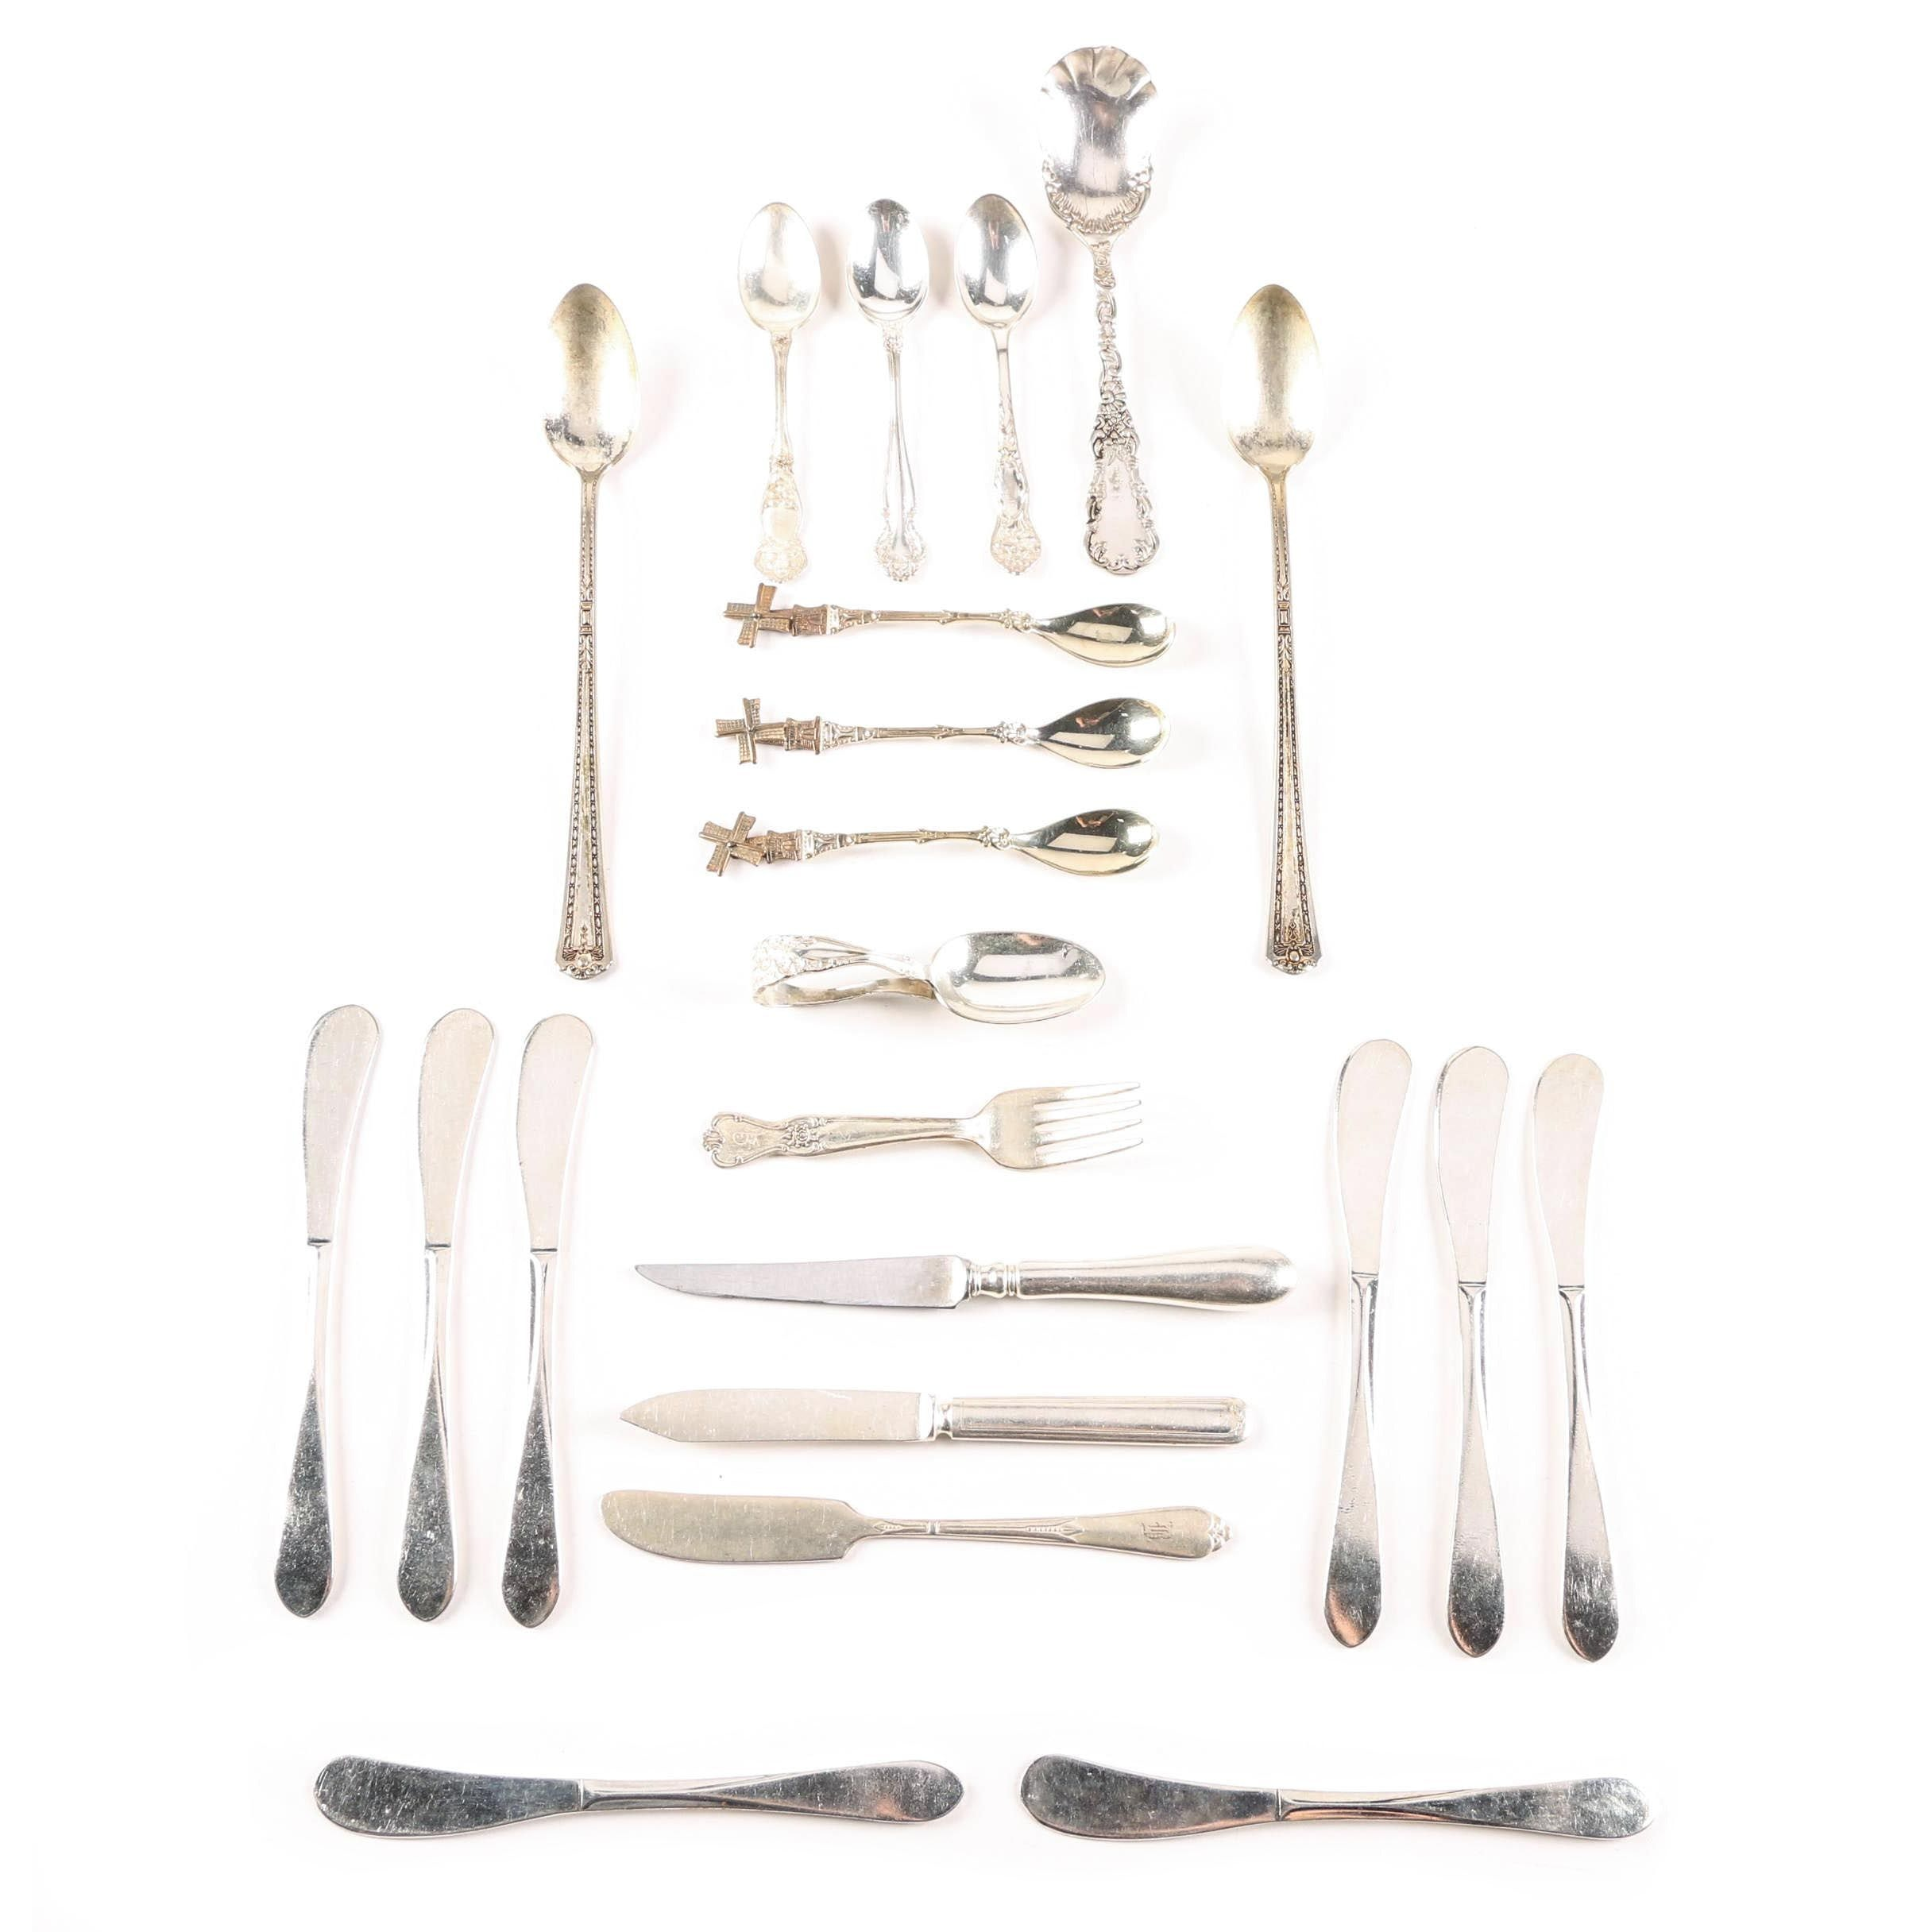 Assortment of Plated Silver Flatware